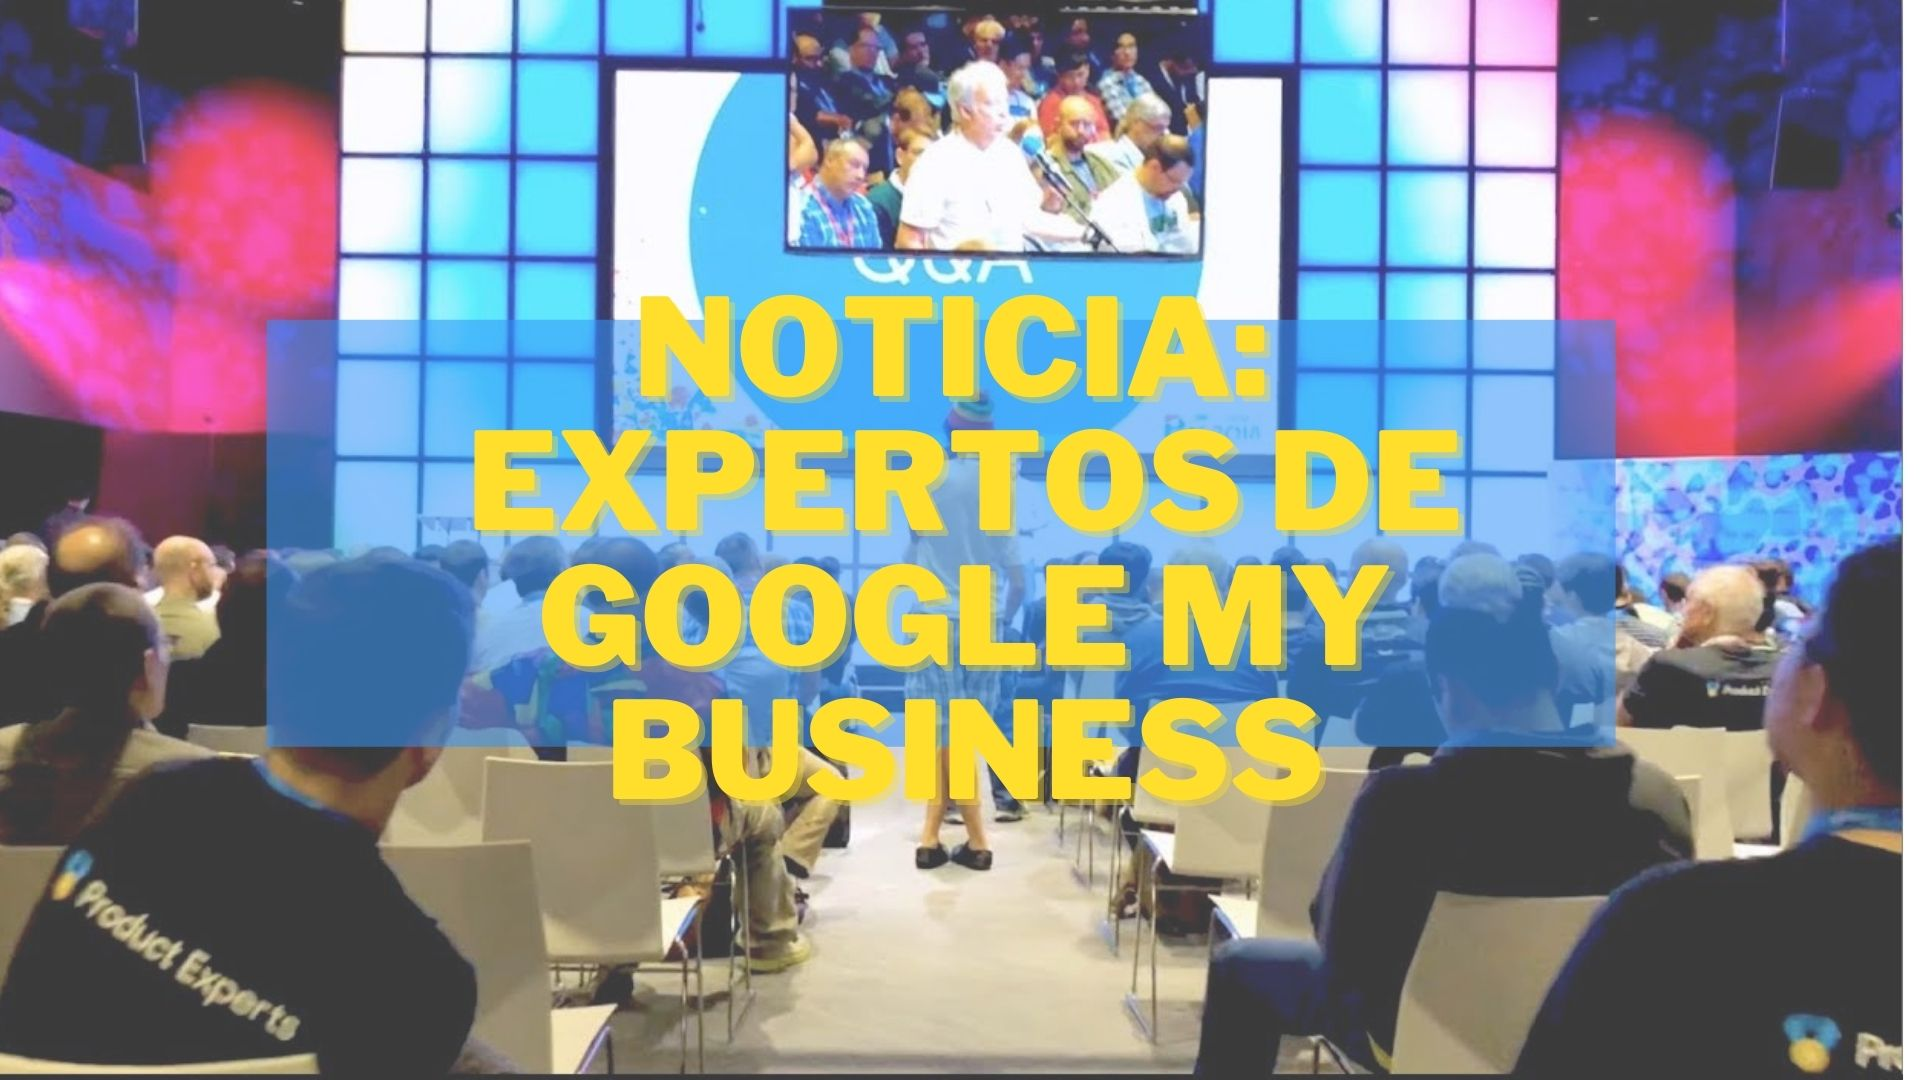 Noticia: Google nos nombra Expertos certificados de Google My Business